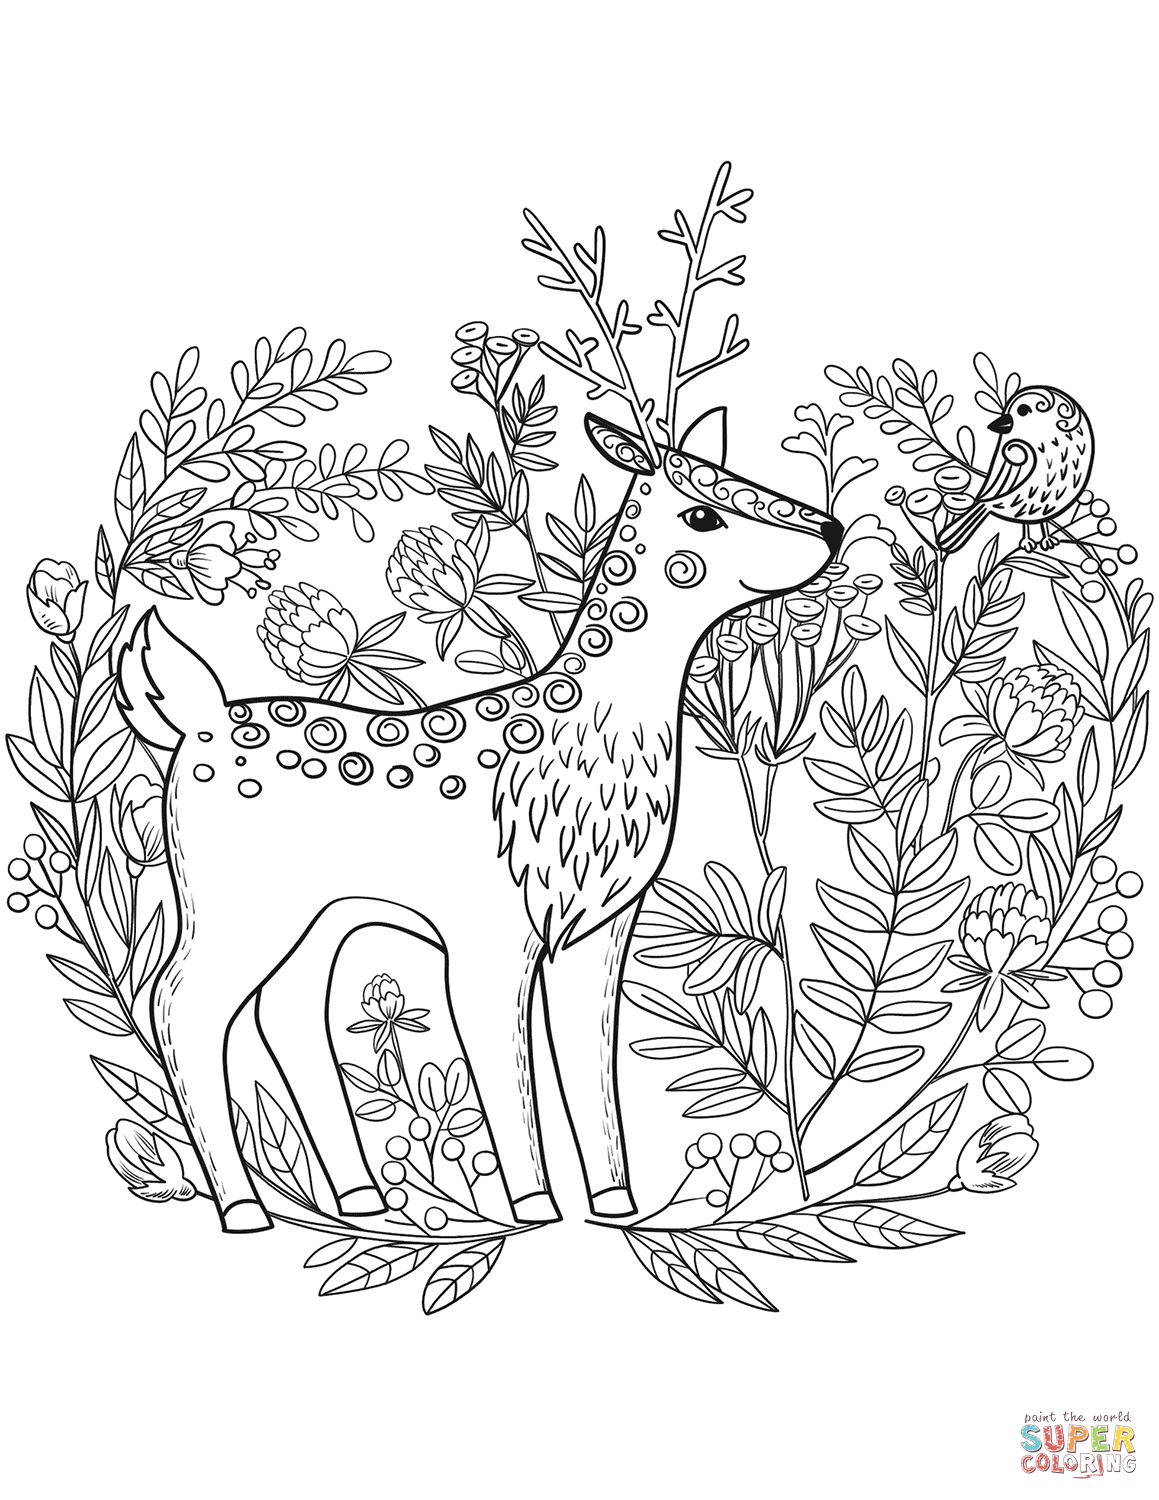 Fawn Coloring Page Free Printable Coloring Pages Deer Coloring Pages Cute Coloring Pages Coloring Pages